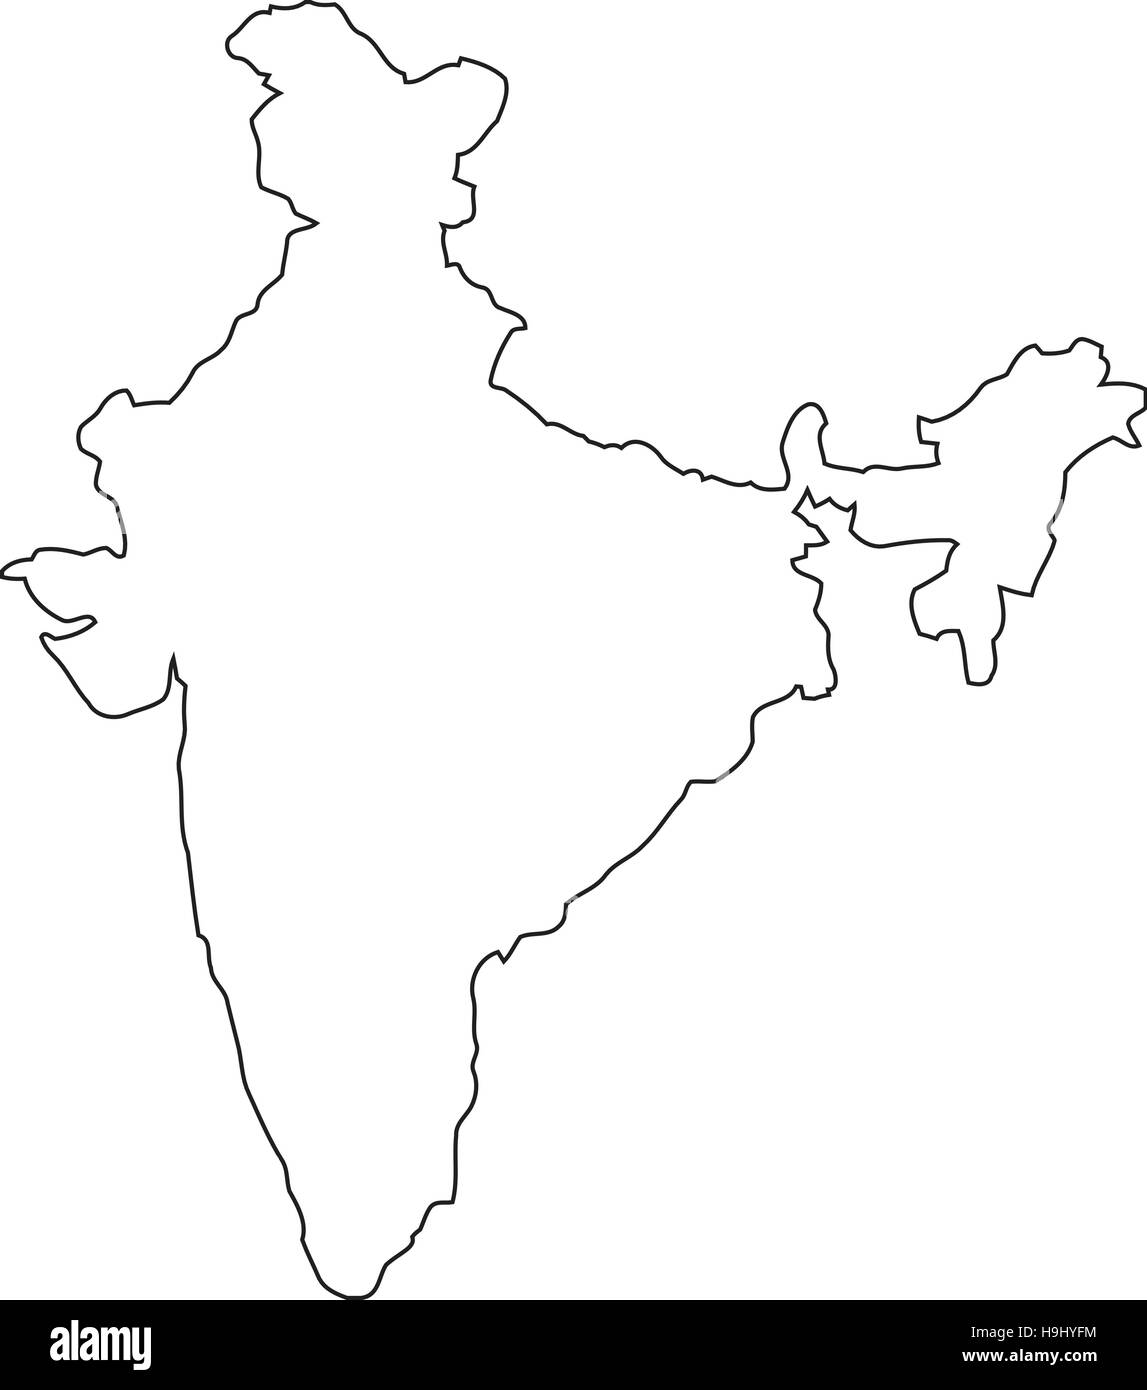 India Map Stock Photos & India Map Stock Images - Alamy on draw map of russia, draw map of england, draw map of ireland, draw map of california, draw map of bahamas, draw map of guyana, draw map of nepal, draw map of world, draw map of norway, draw map of cambodia, draw map of asia, draw map of portugal, draw map of korea, draw the taj mahal, draw map of afghanistan,